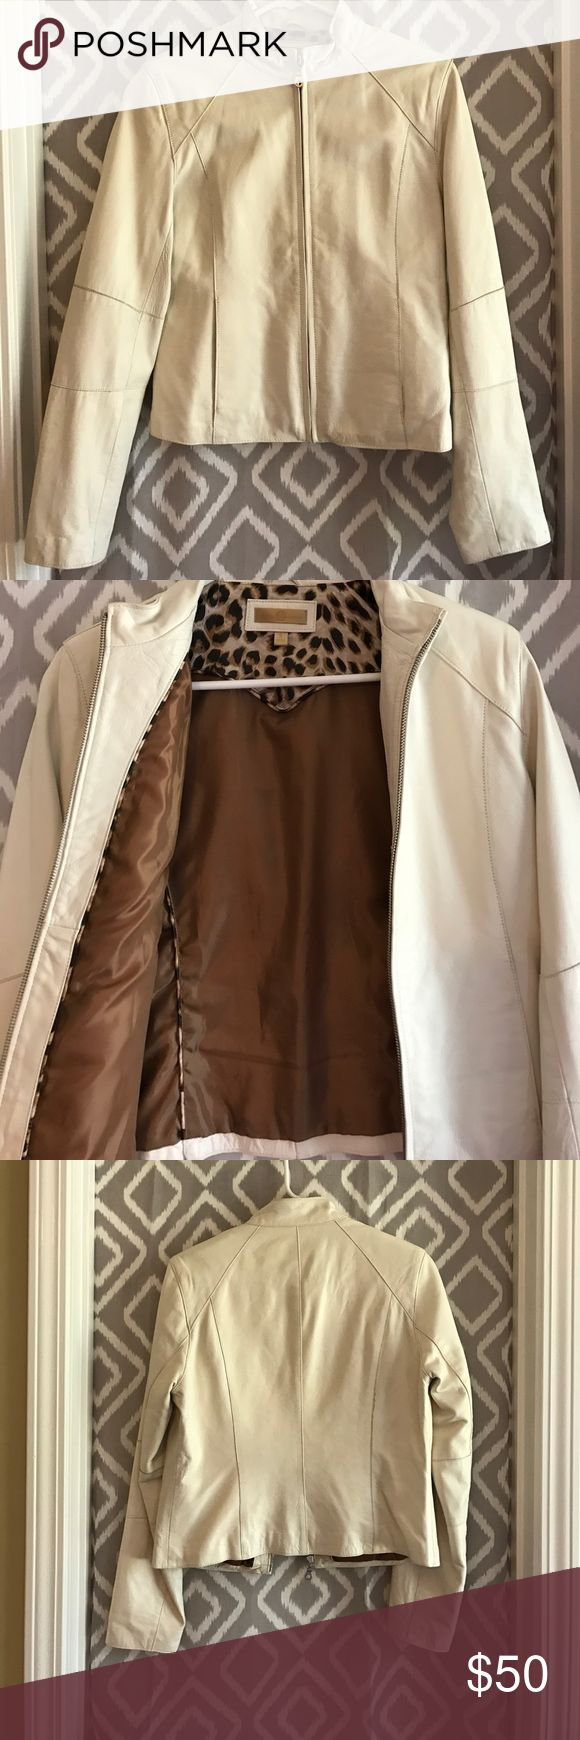 Wilsons leather ivory jacket Size S Wilsons Leather ivory jacket with leopard detail on inside. Worn only a few times, in good condition. Just needs a light wipe down with leather cleaner. Wilsons Leather Jackets & Coats Blazers